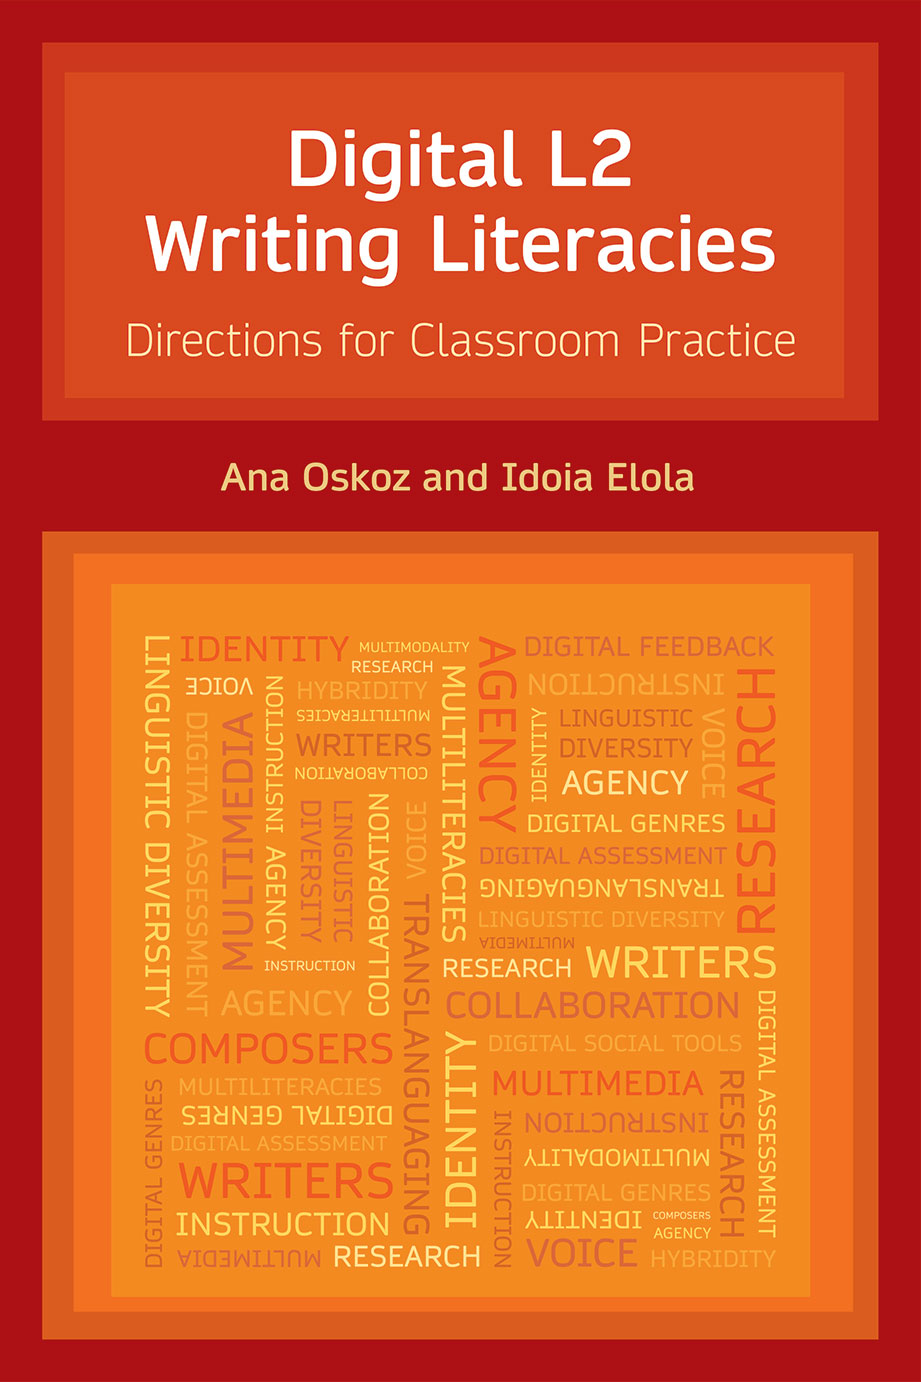 Digital L2 Writing Literacies - Directions for Classroom Practice - Ana Oskoz